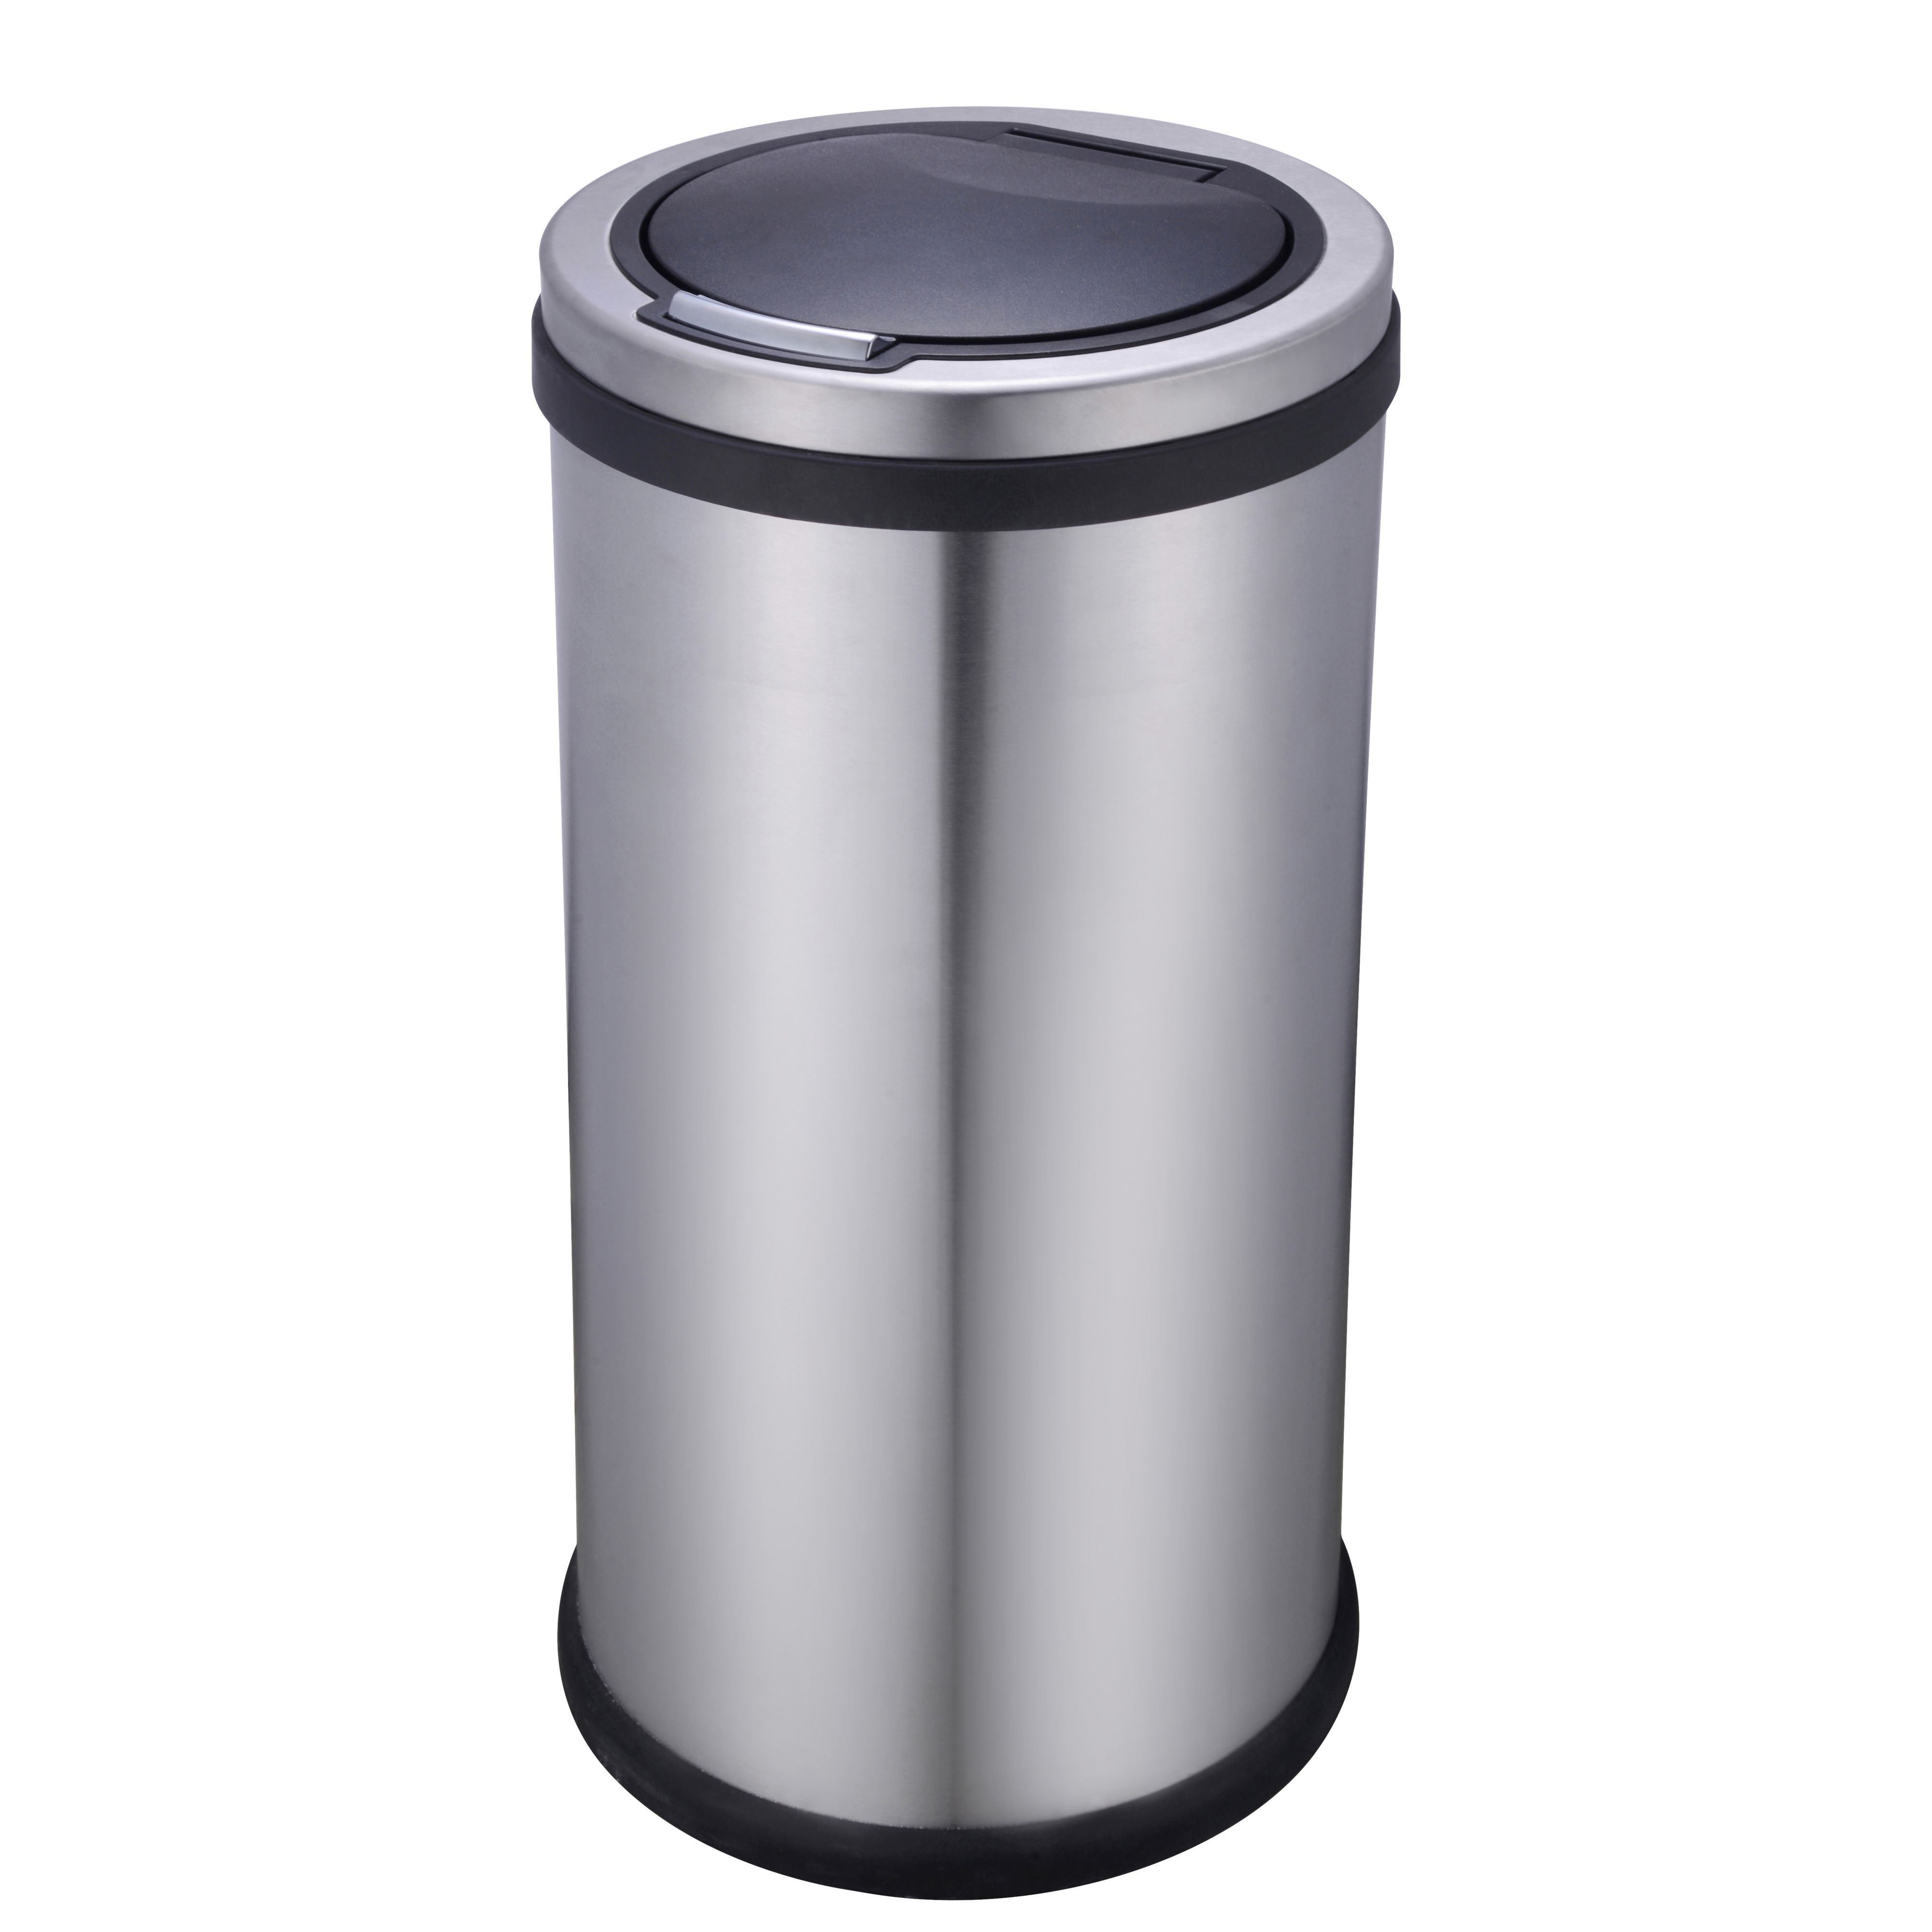 Cooke Lewis 30 Kg Stainless Steel Touch Top Kitchen Bin B Q For All Your Home And Garden Supplies Advice On The Latest Diy Trends